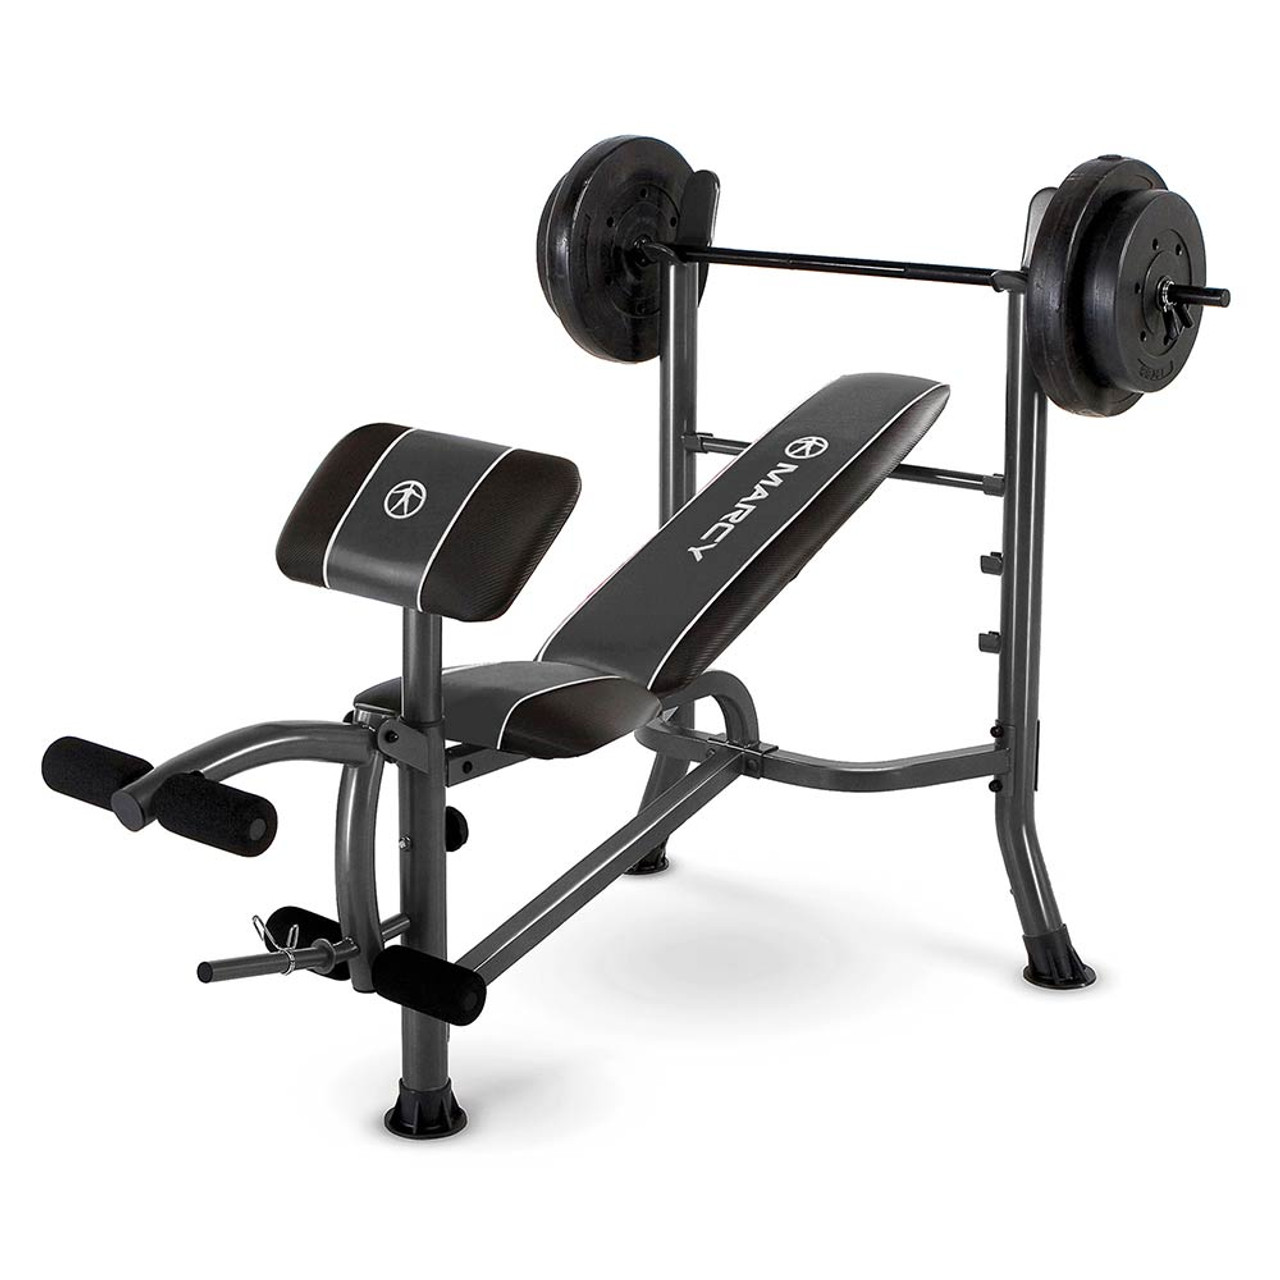 The Marcy Standard Weight Bench With 80 Lb. Weight Set MWB 20101 Is